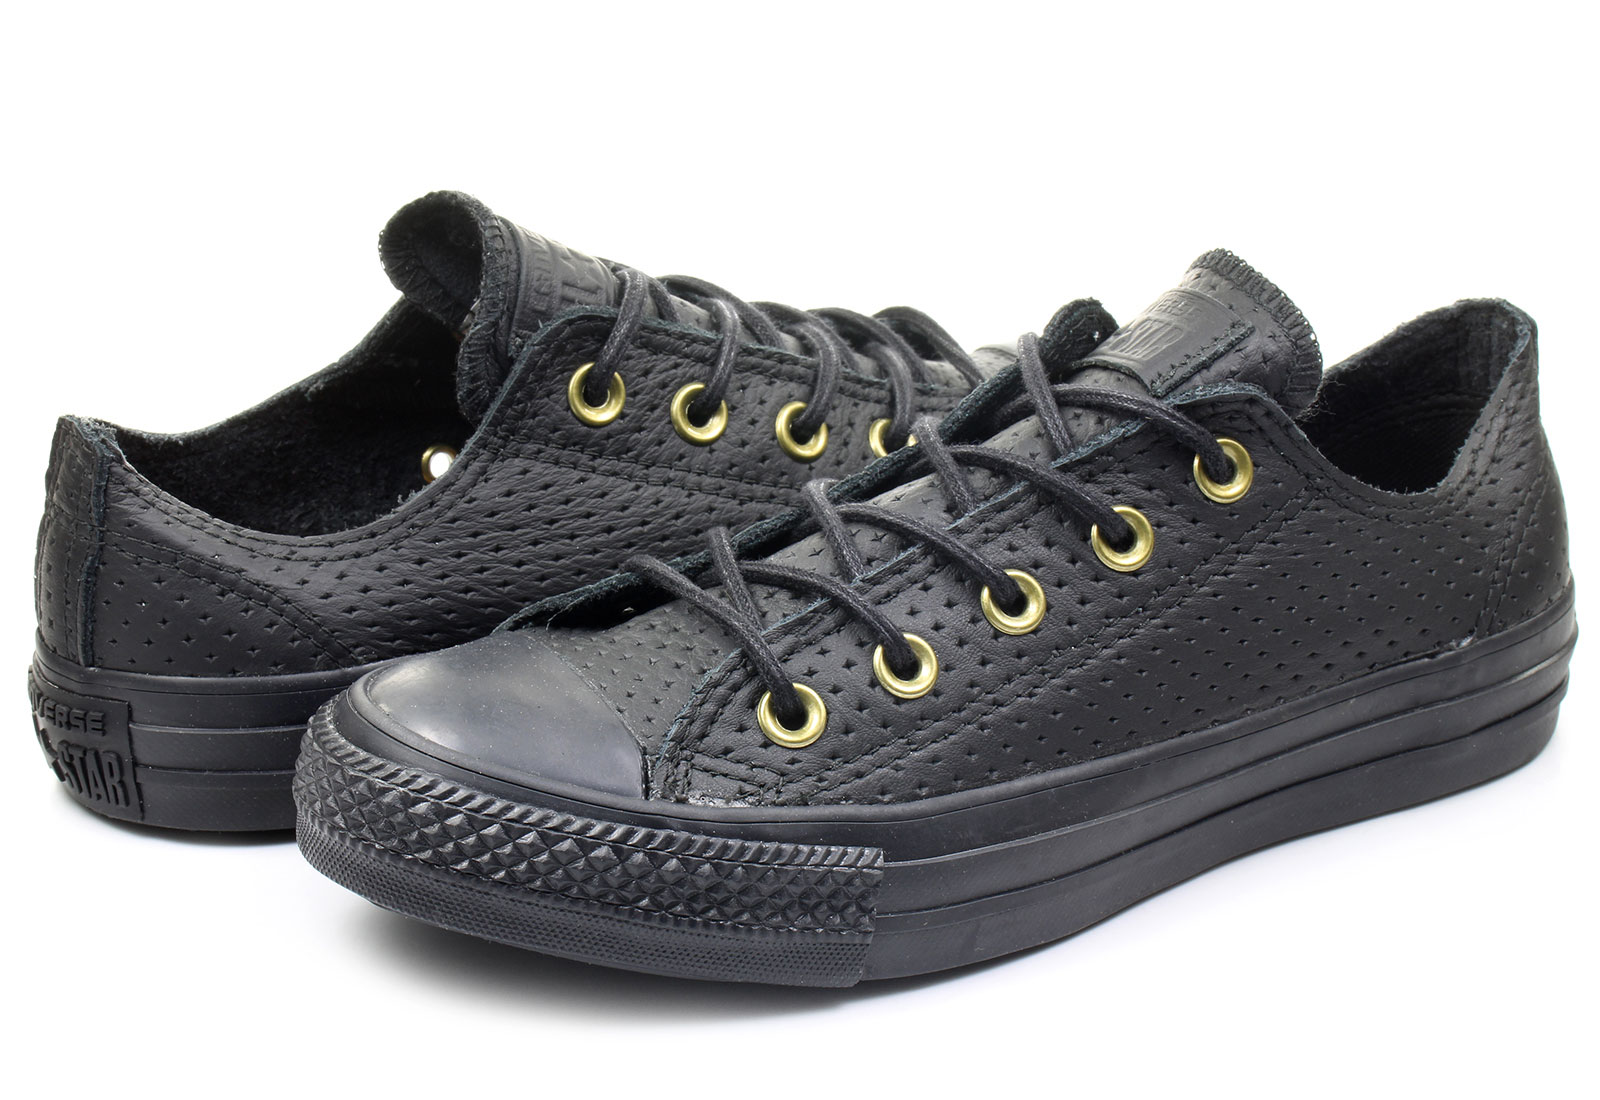 Converse Nízké boty - Chuck Taylor All Star Leather Ox ... d2fbf67e2da